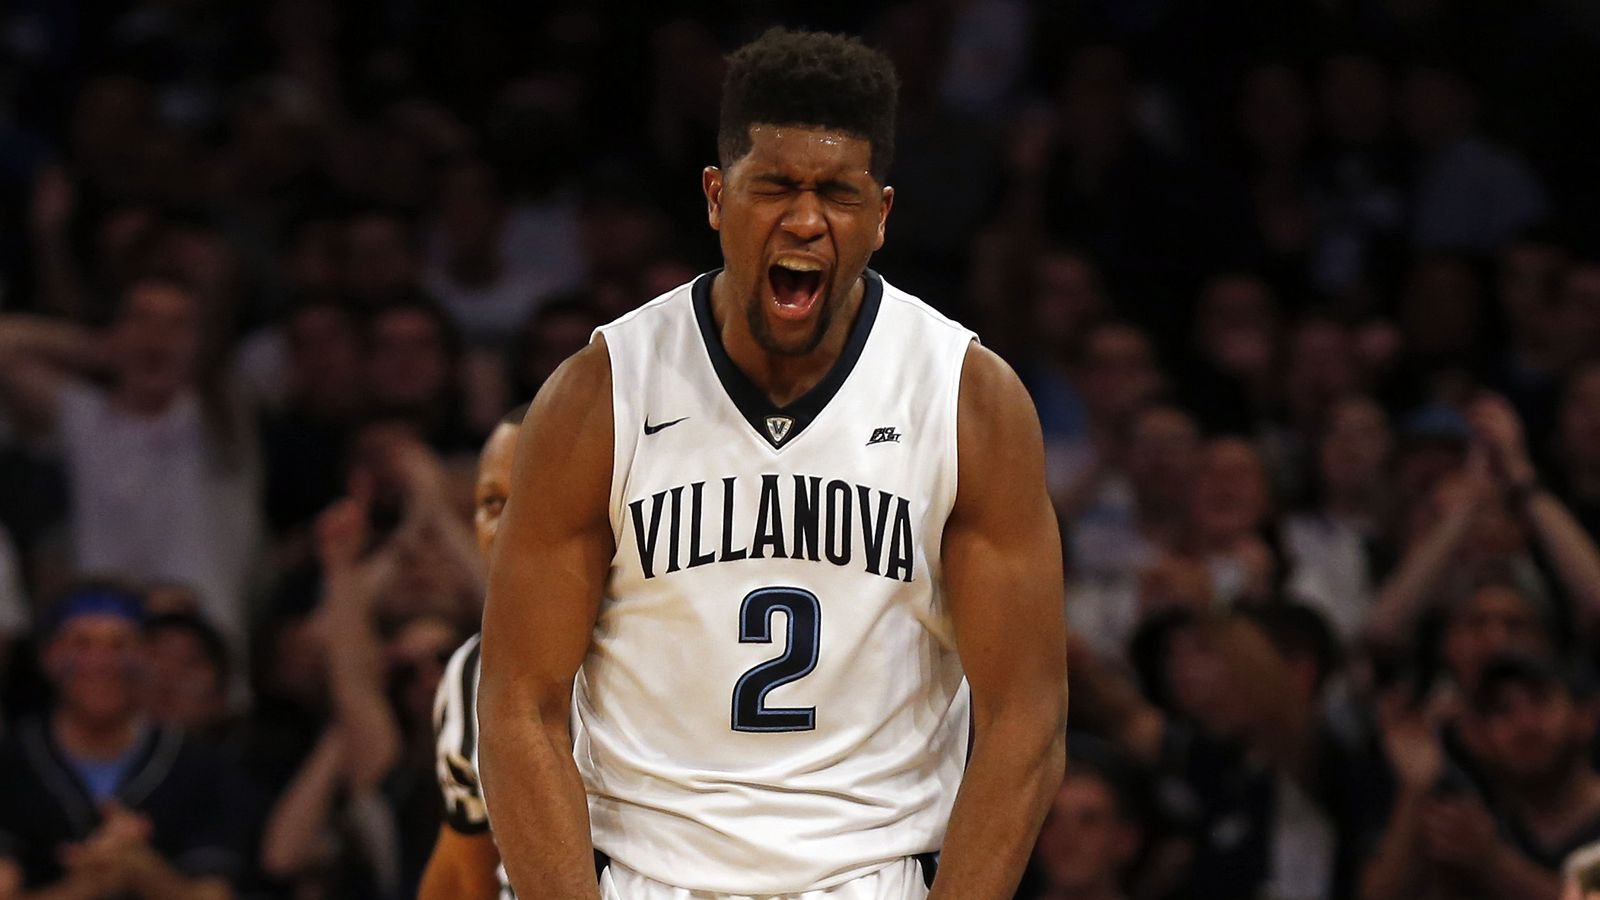 villanova defeats creighton to win 2017 big east